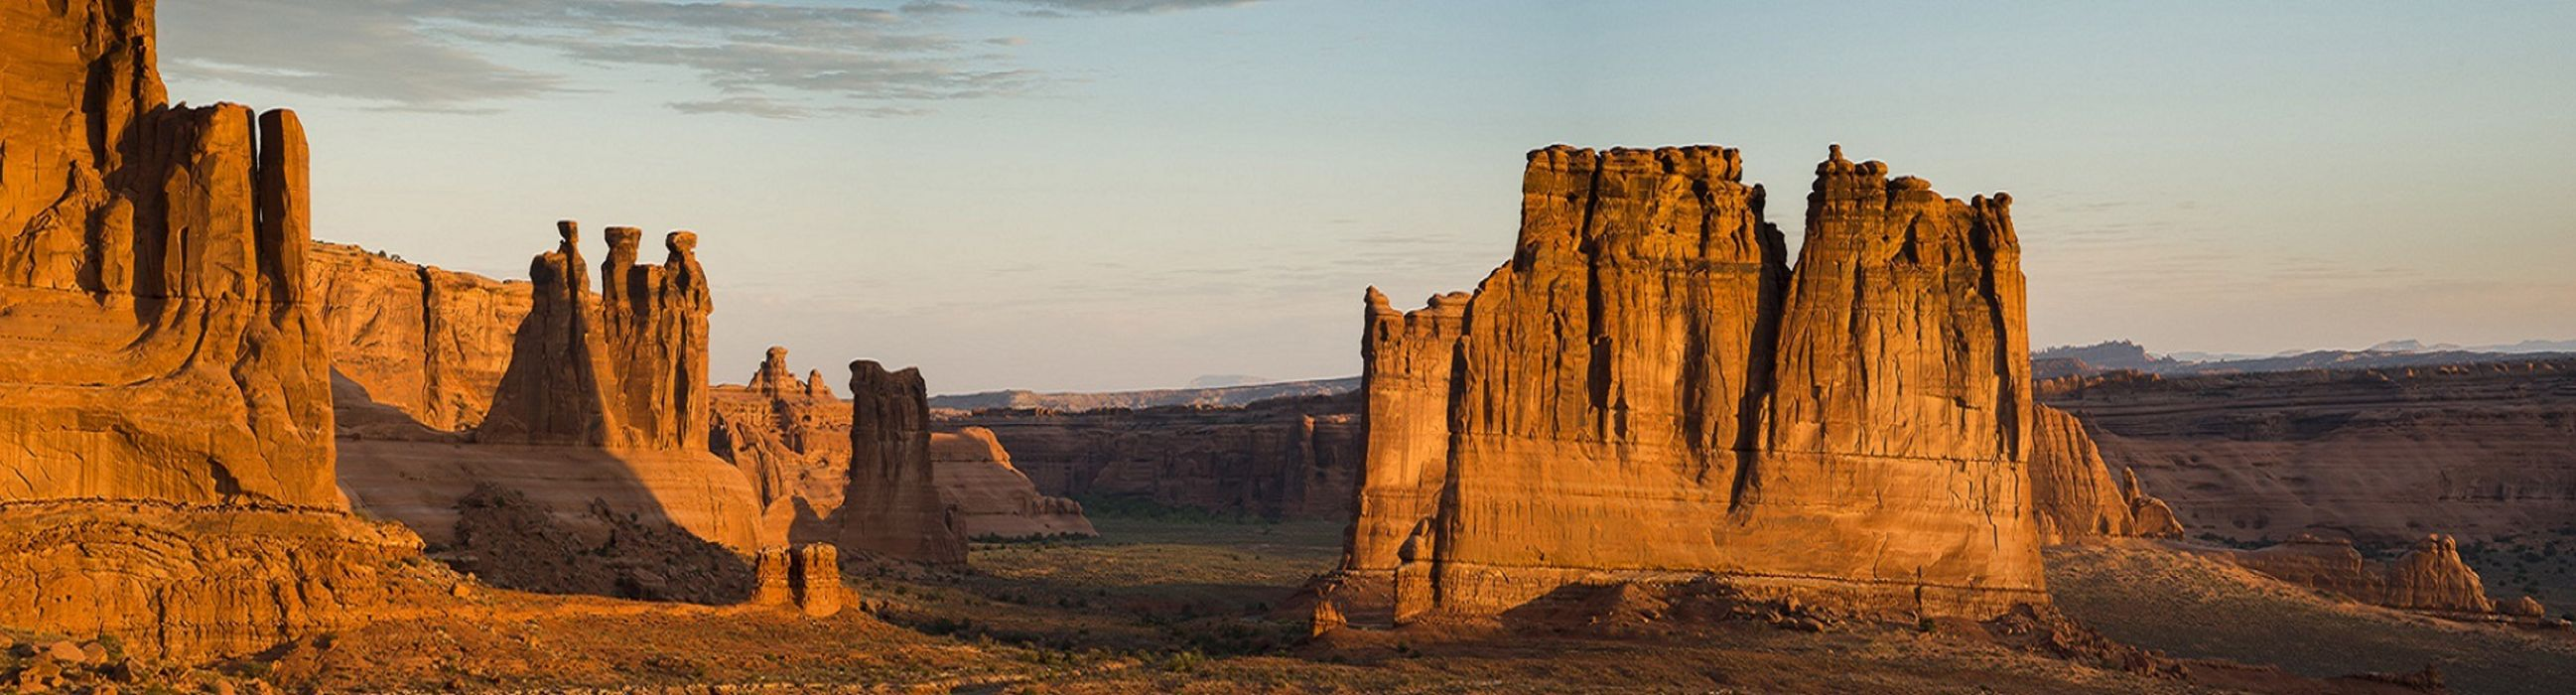 arches national park cliffs colorful dawn daylight desert erosion geological formation geology landscape majestic outdoors beauty wallpaper